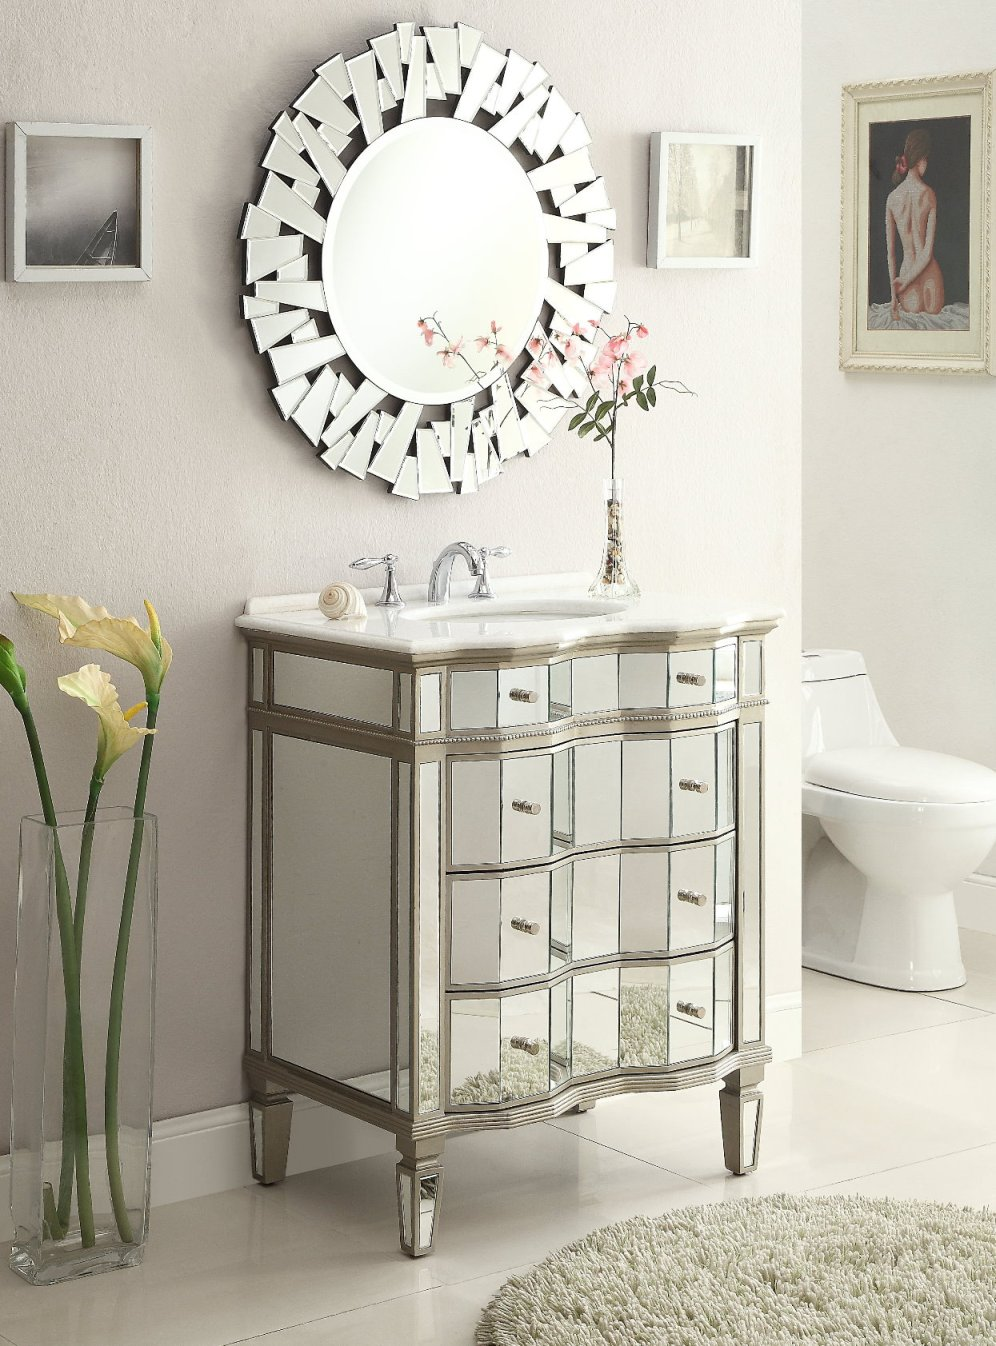 adelina 30 inch mirrored bathroom vanity cabinet mirror - Bathroom Cabinets And Mirrors